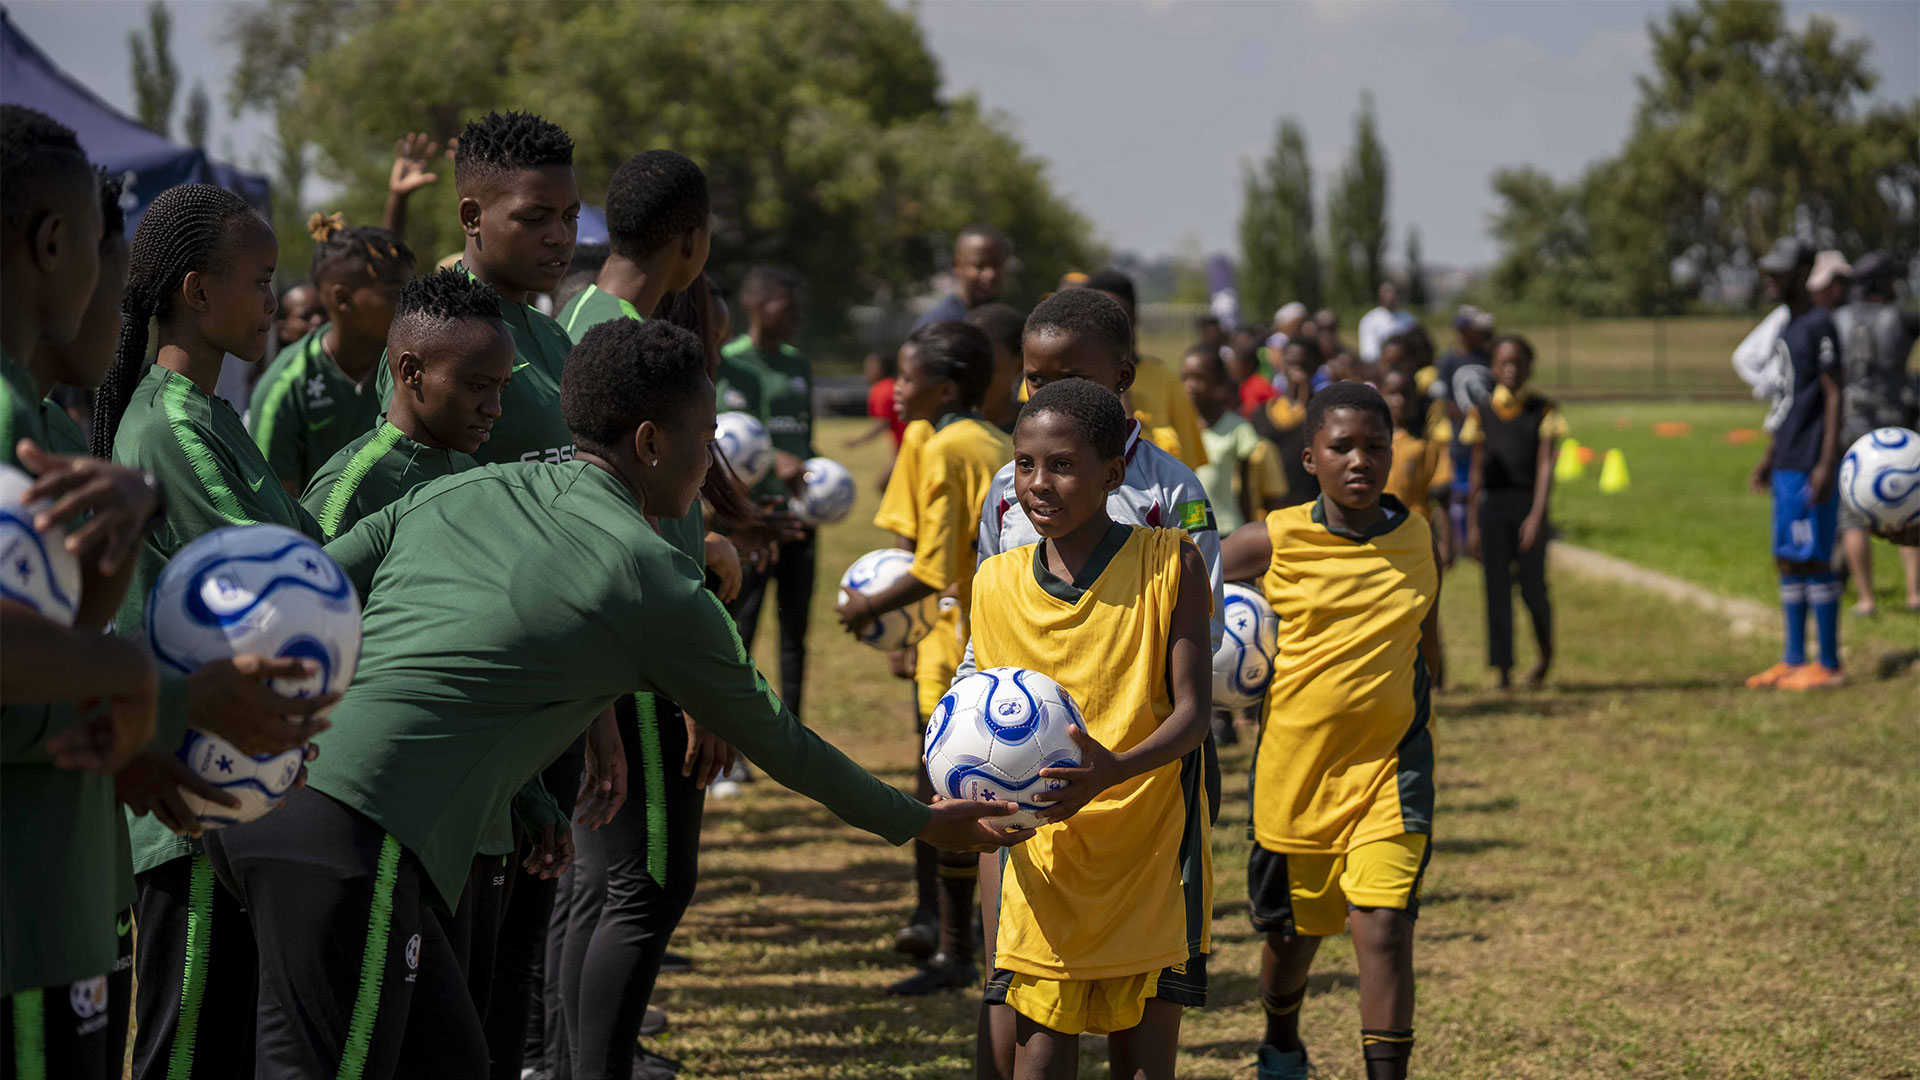 Banyana Banyana players handover balls to girls for limitless